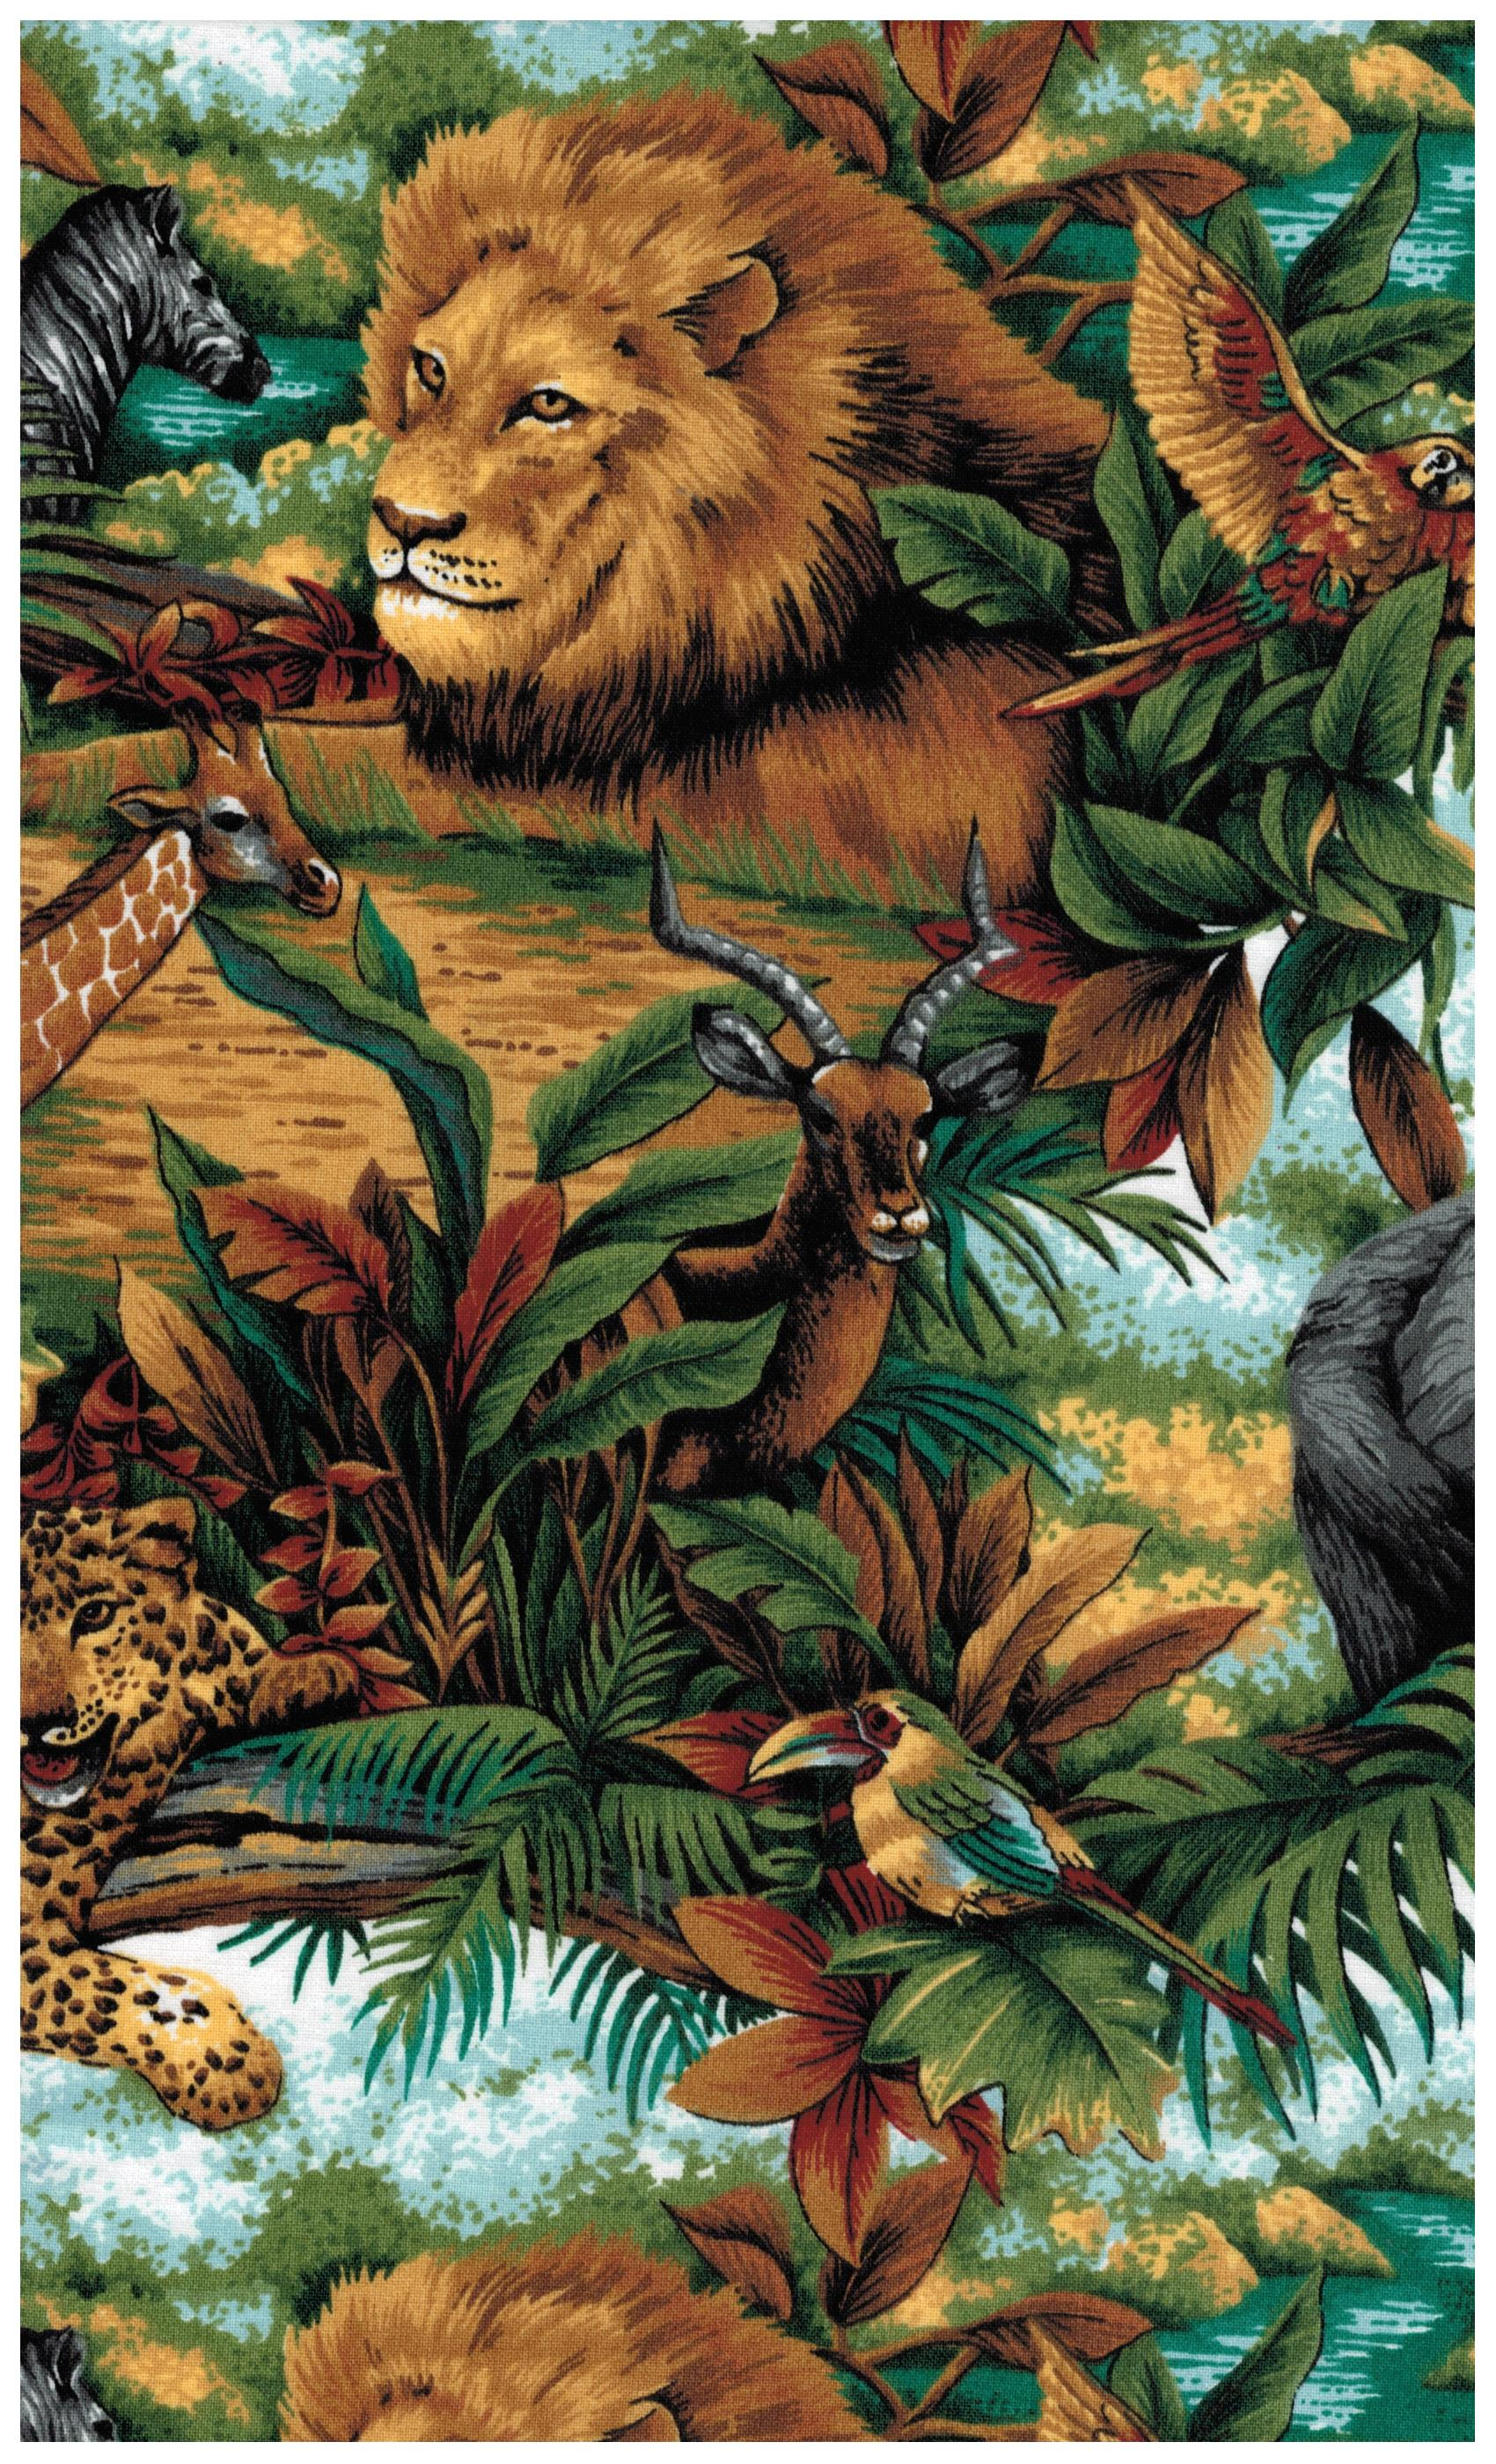 Spring Industries Fabric Jungle Print Lion Elephant